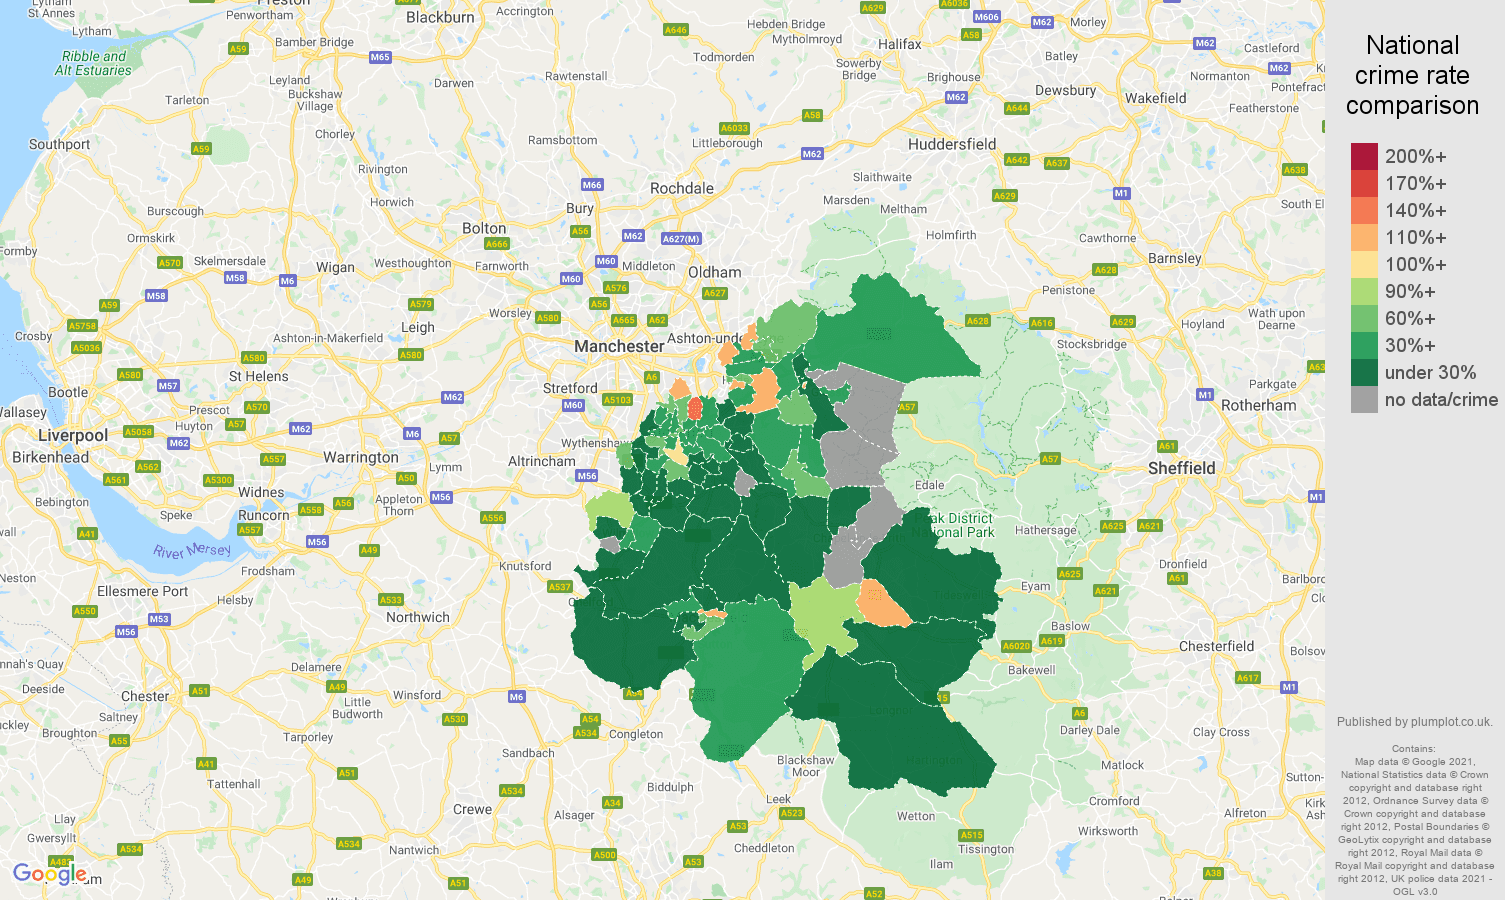 Stockport drugs crime rate comparison map